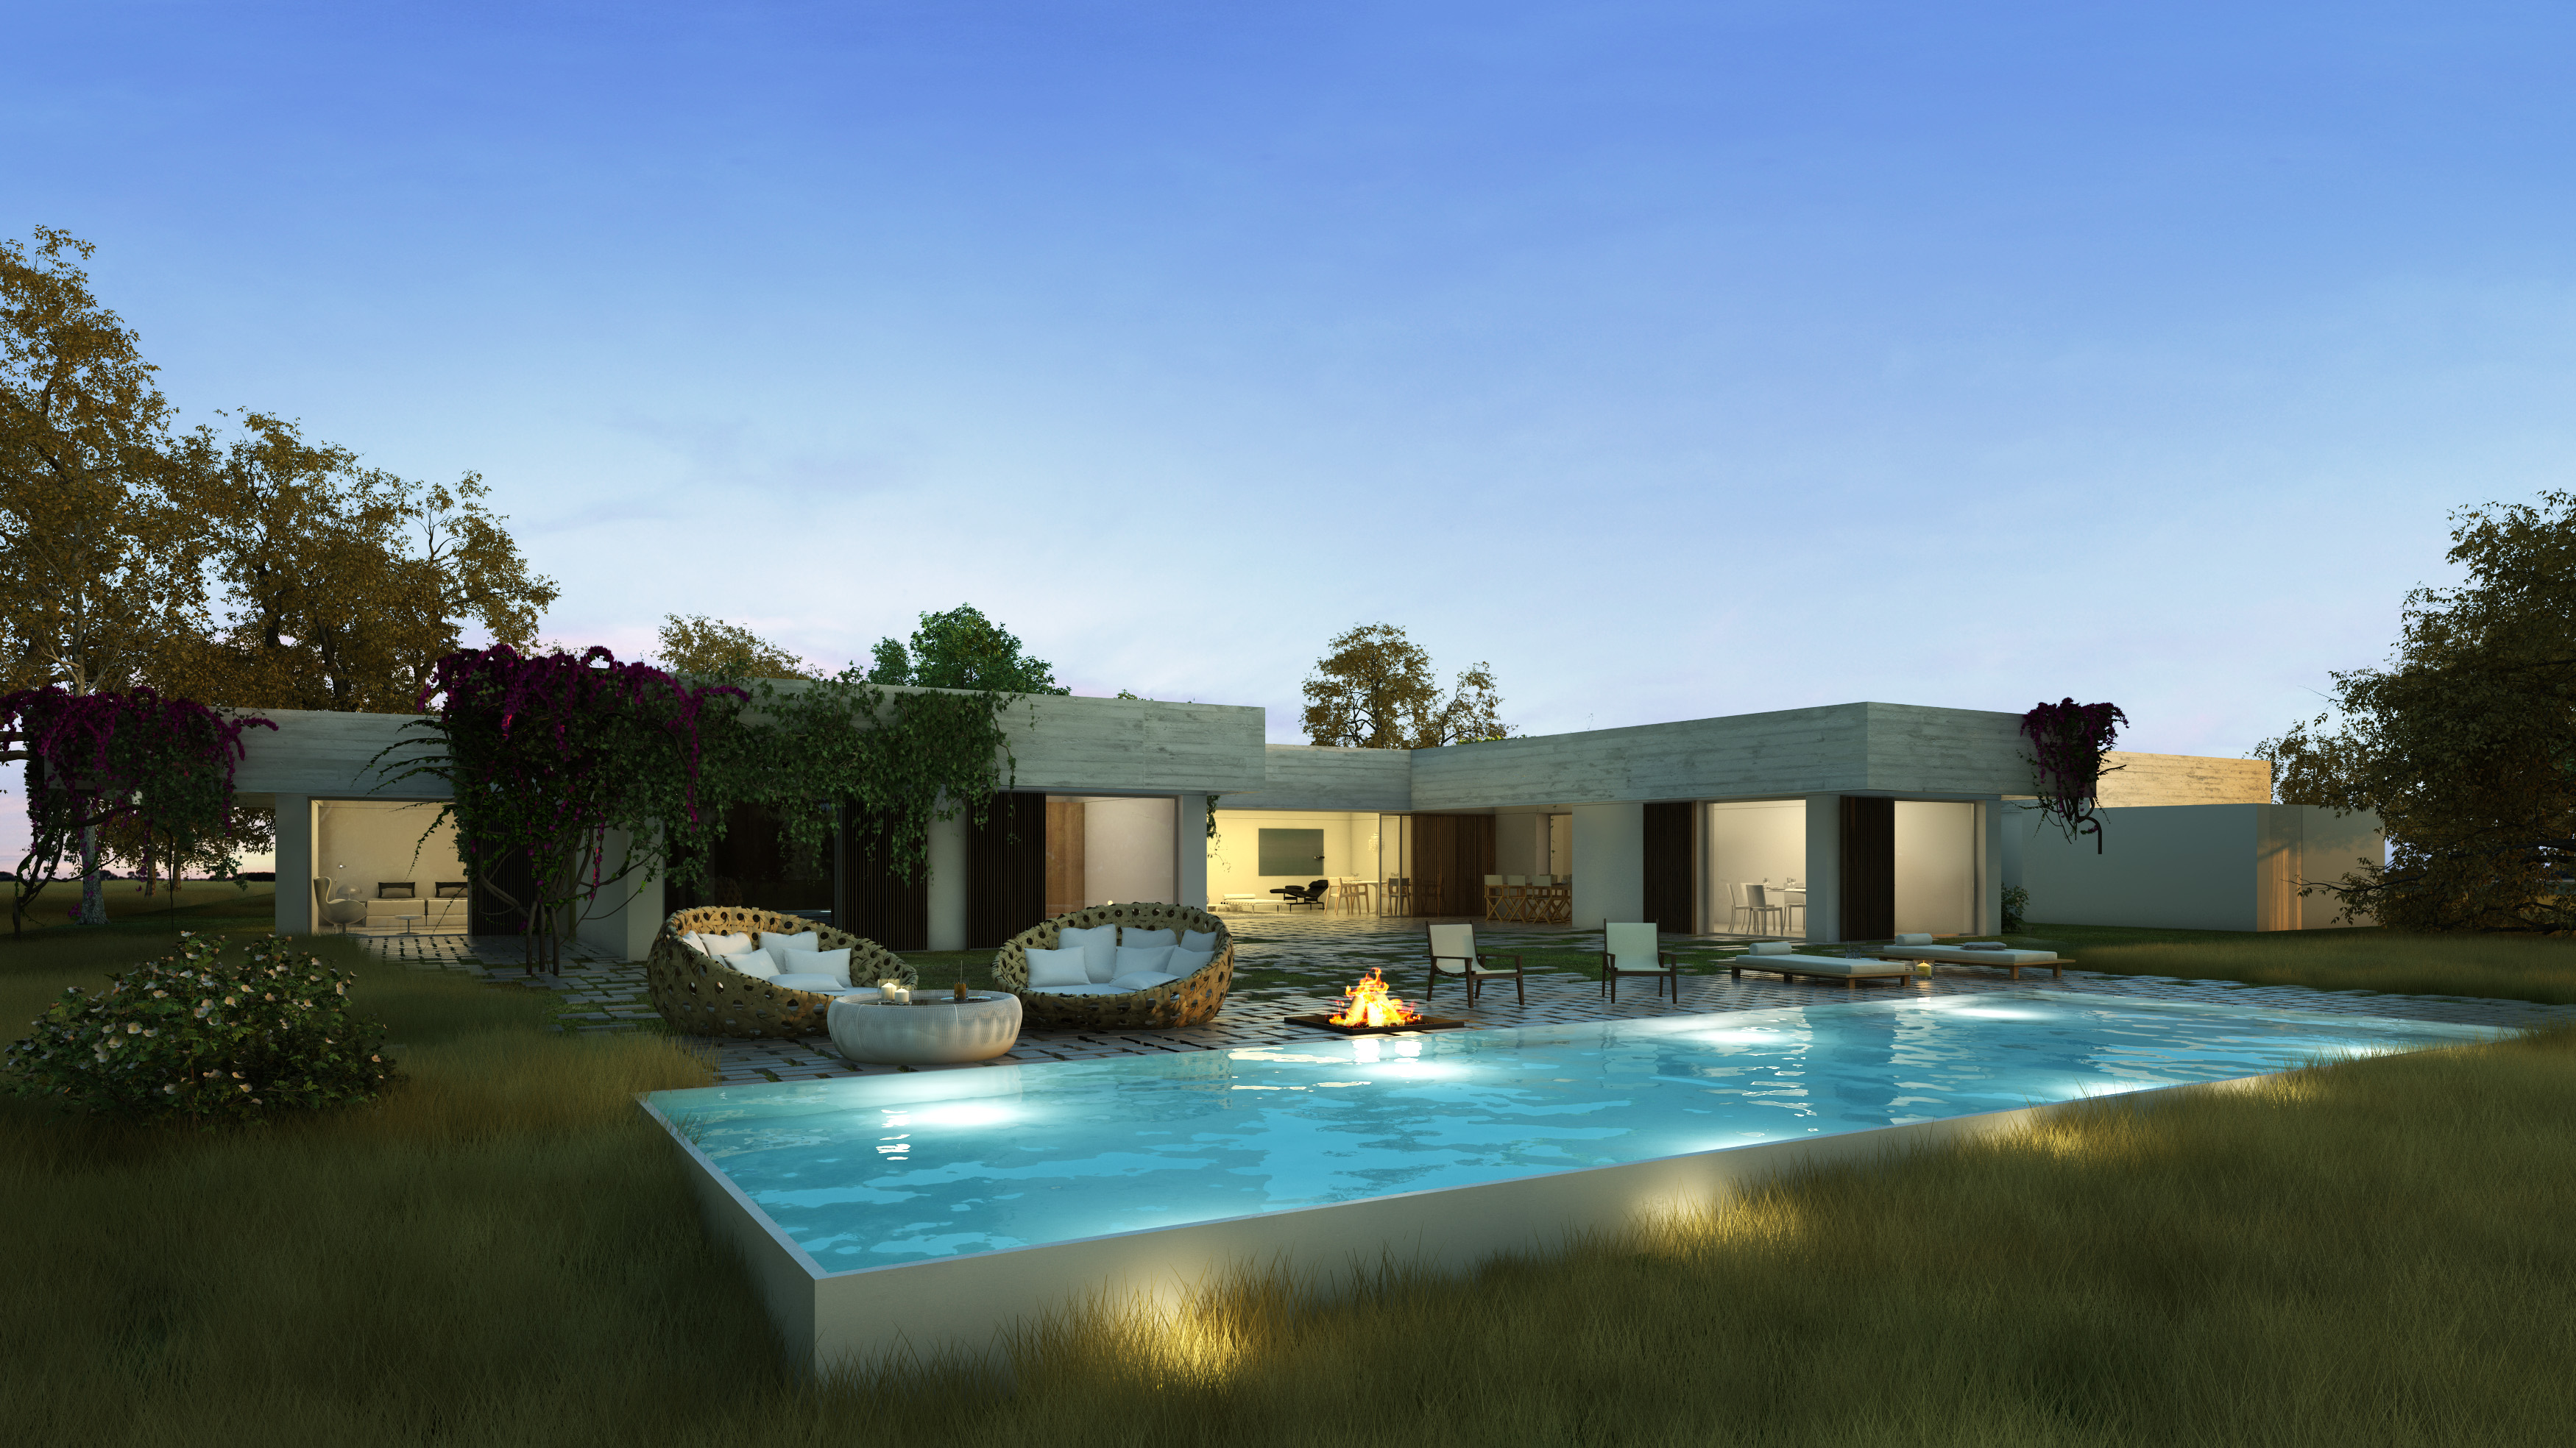 2 bedroom villa with a swimming pool